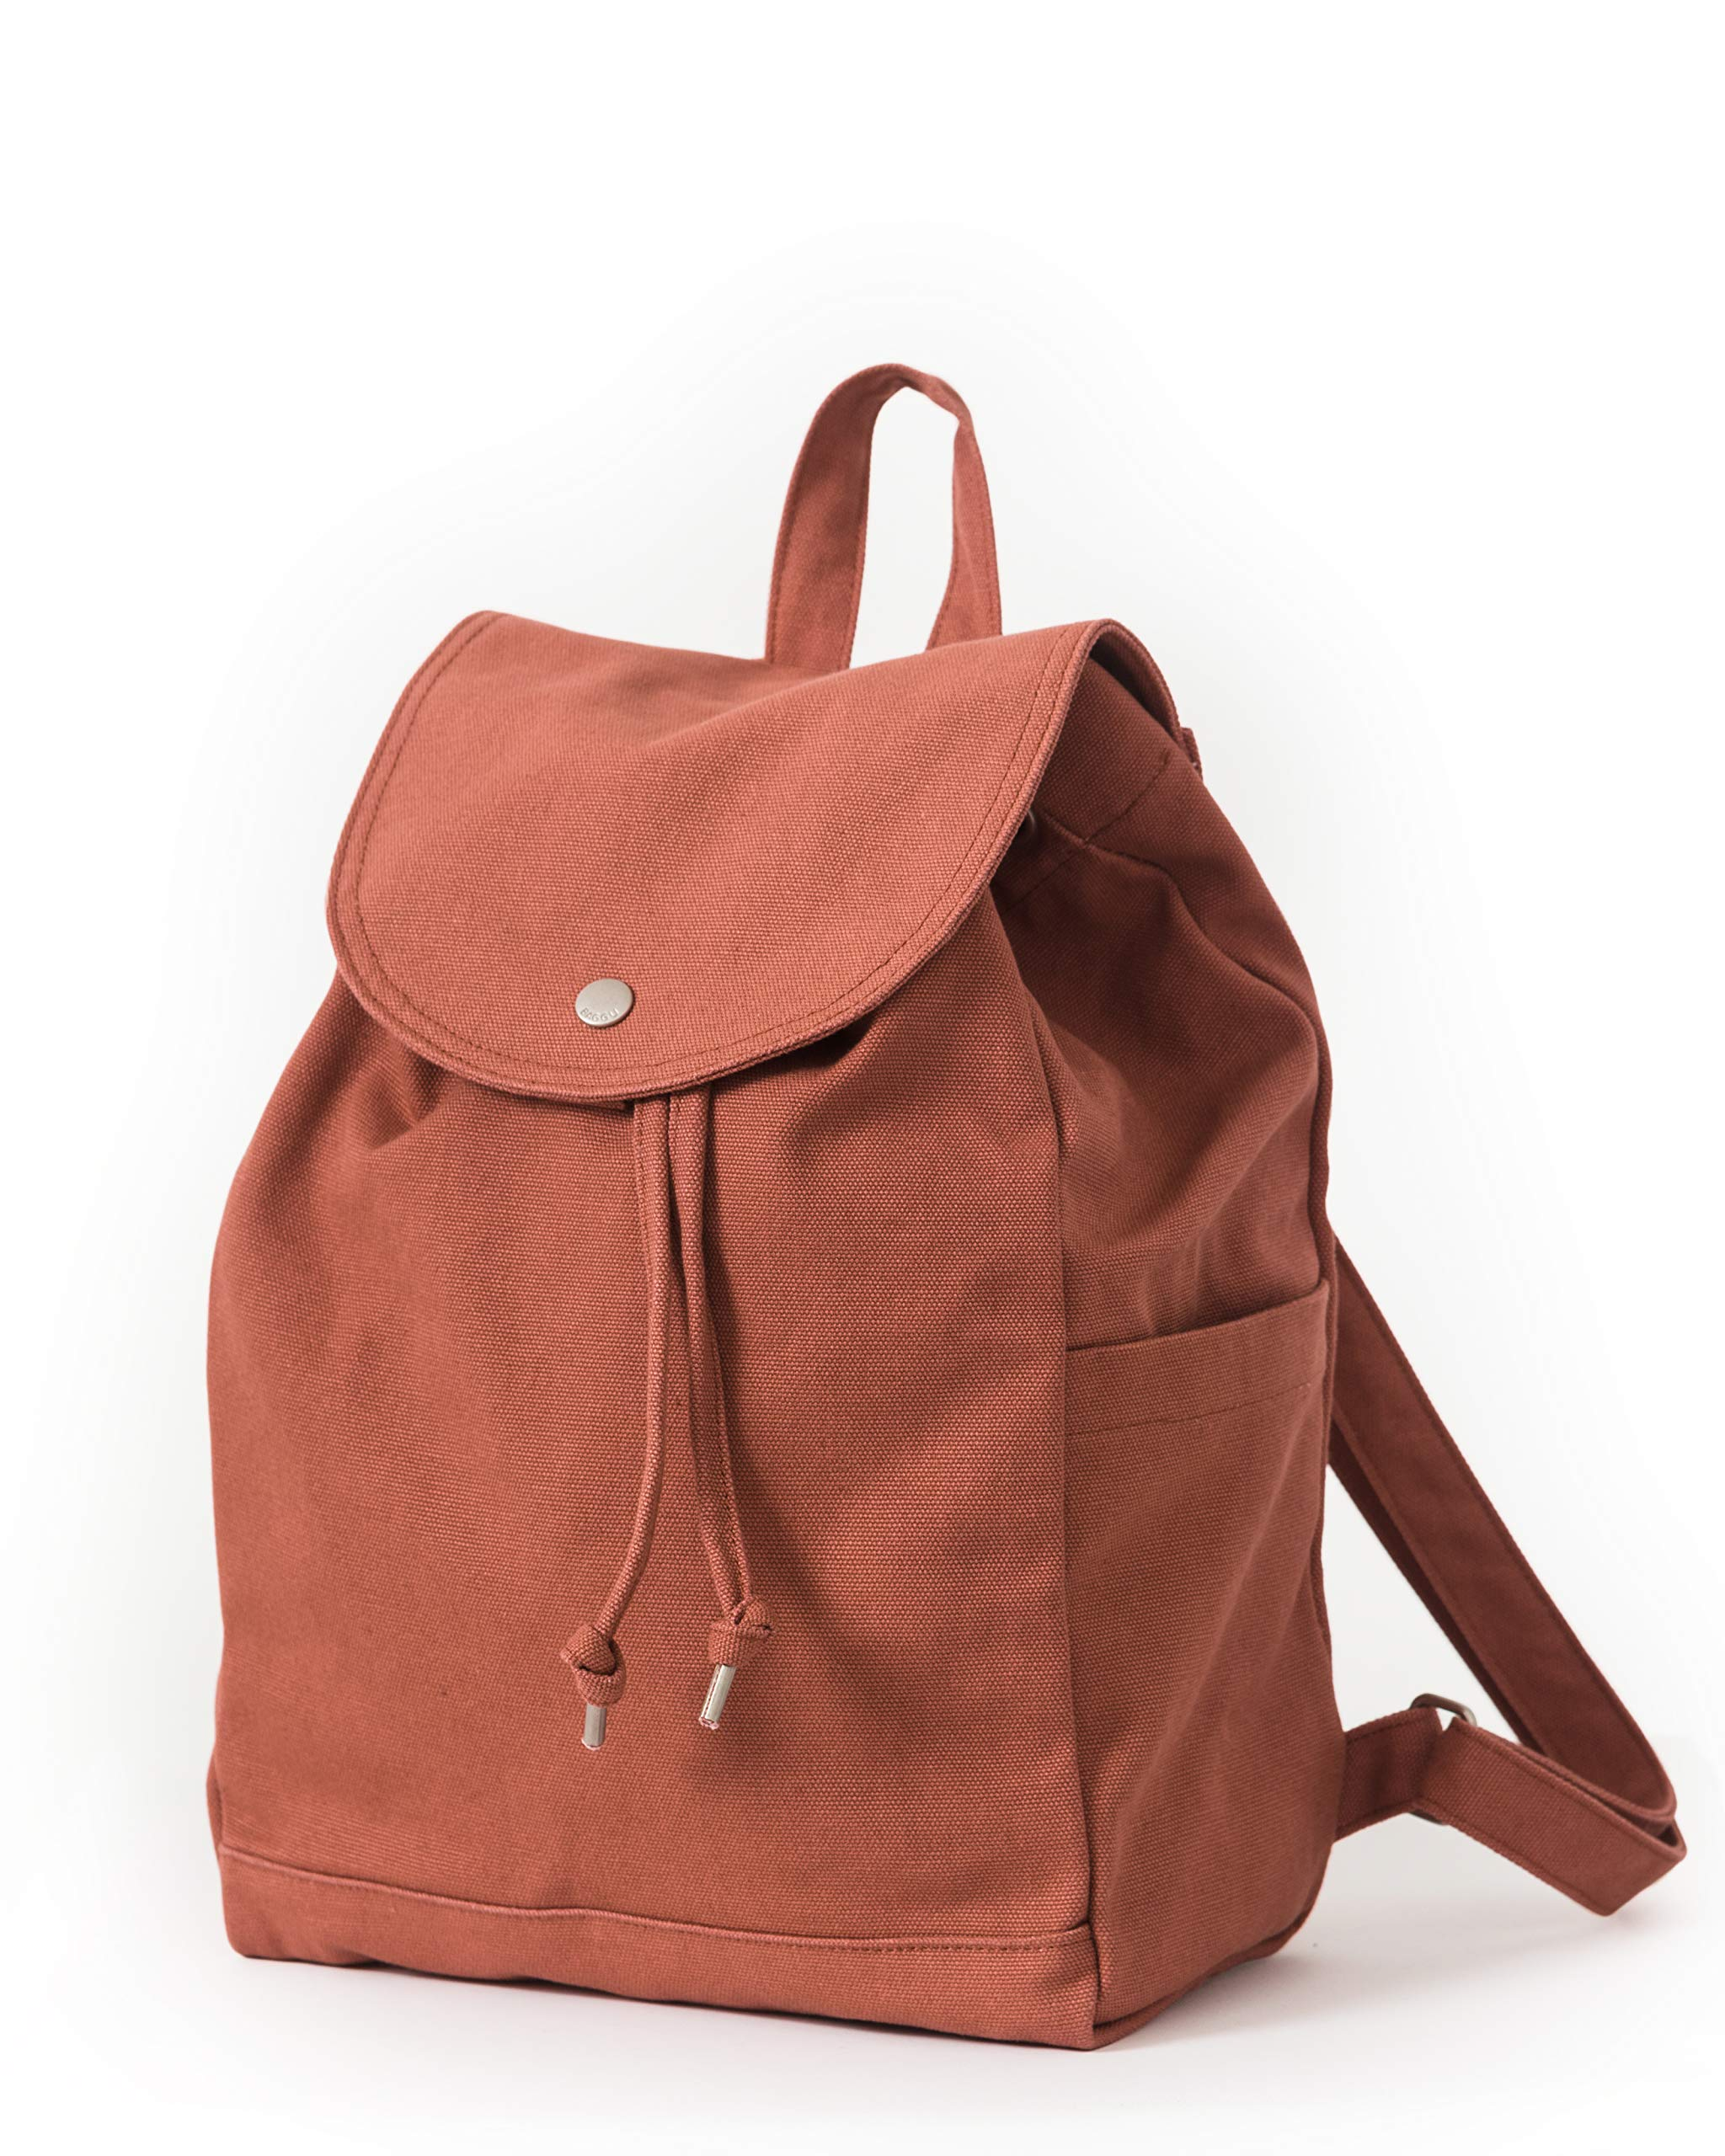 BAGGU Canvas Backpack, Durable and Stylish Simple